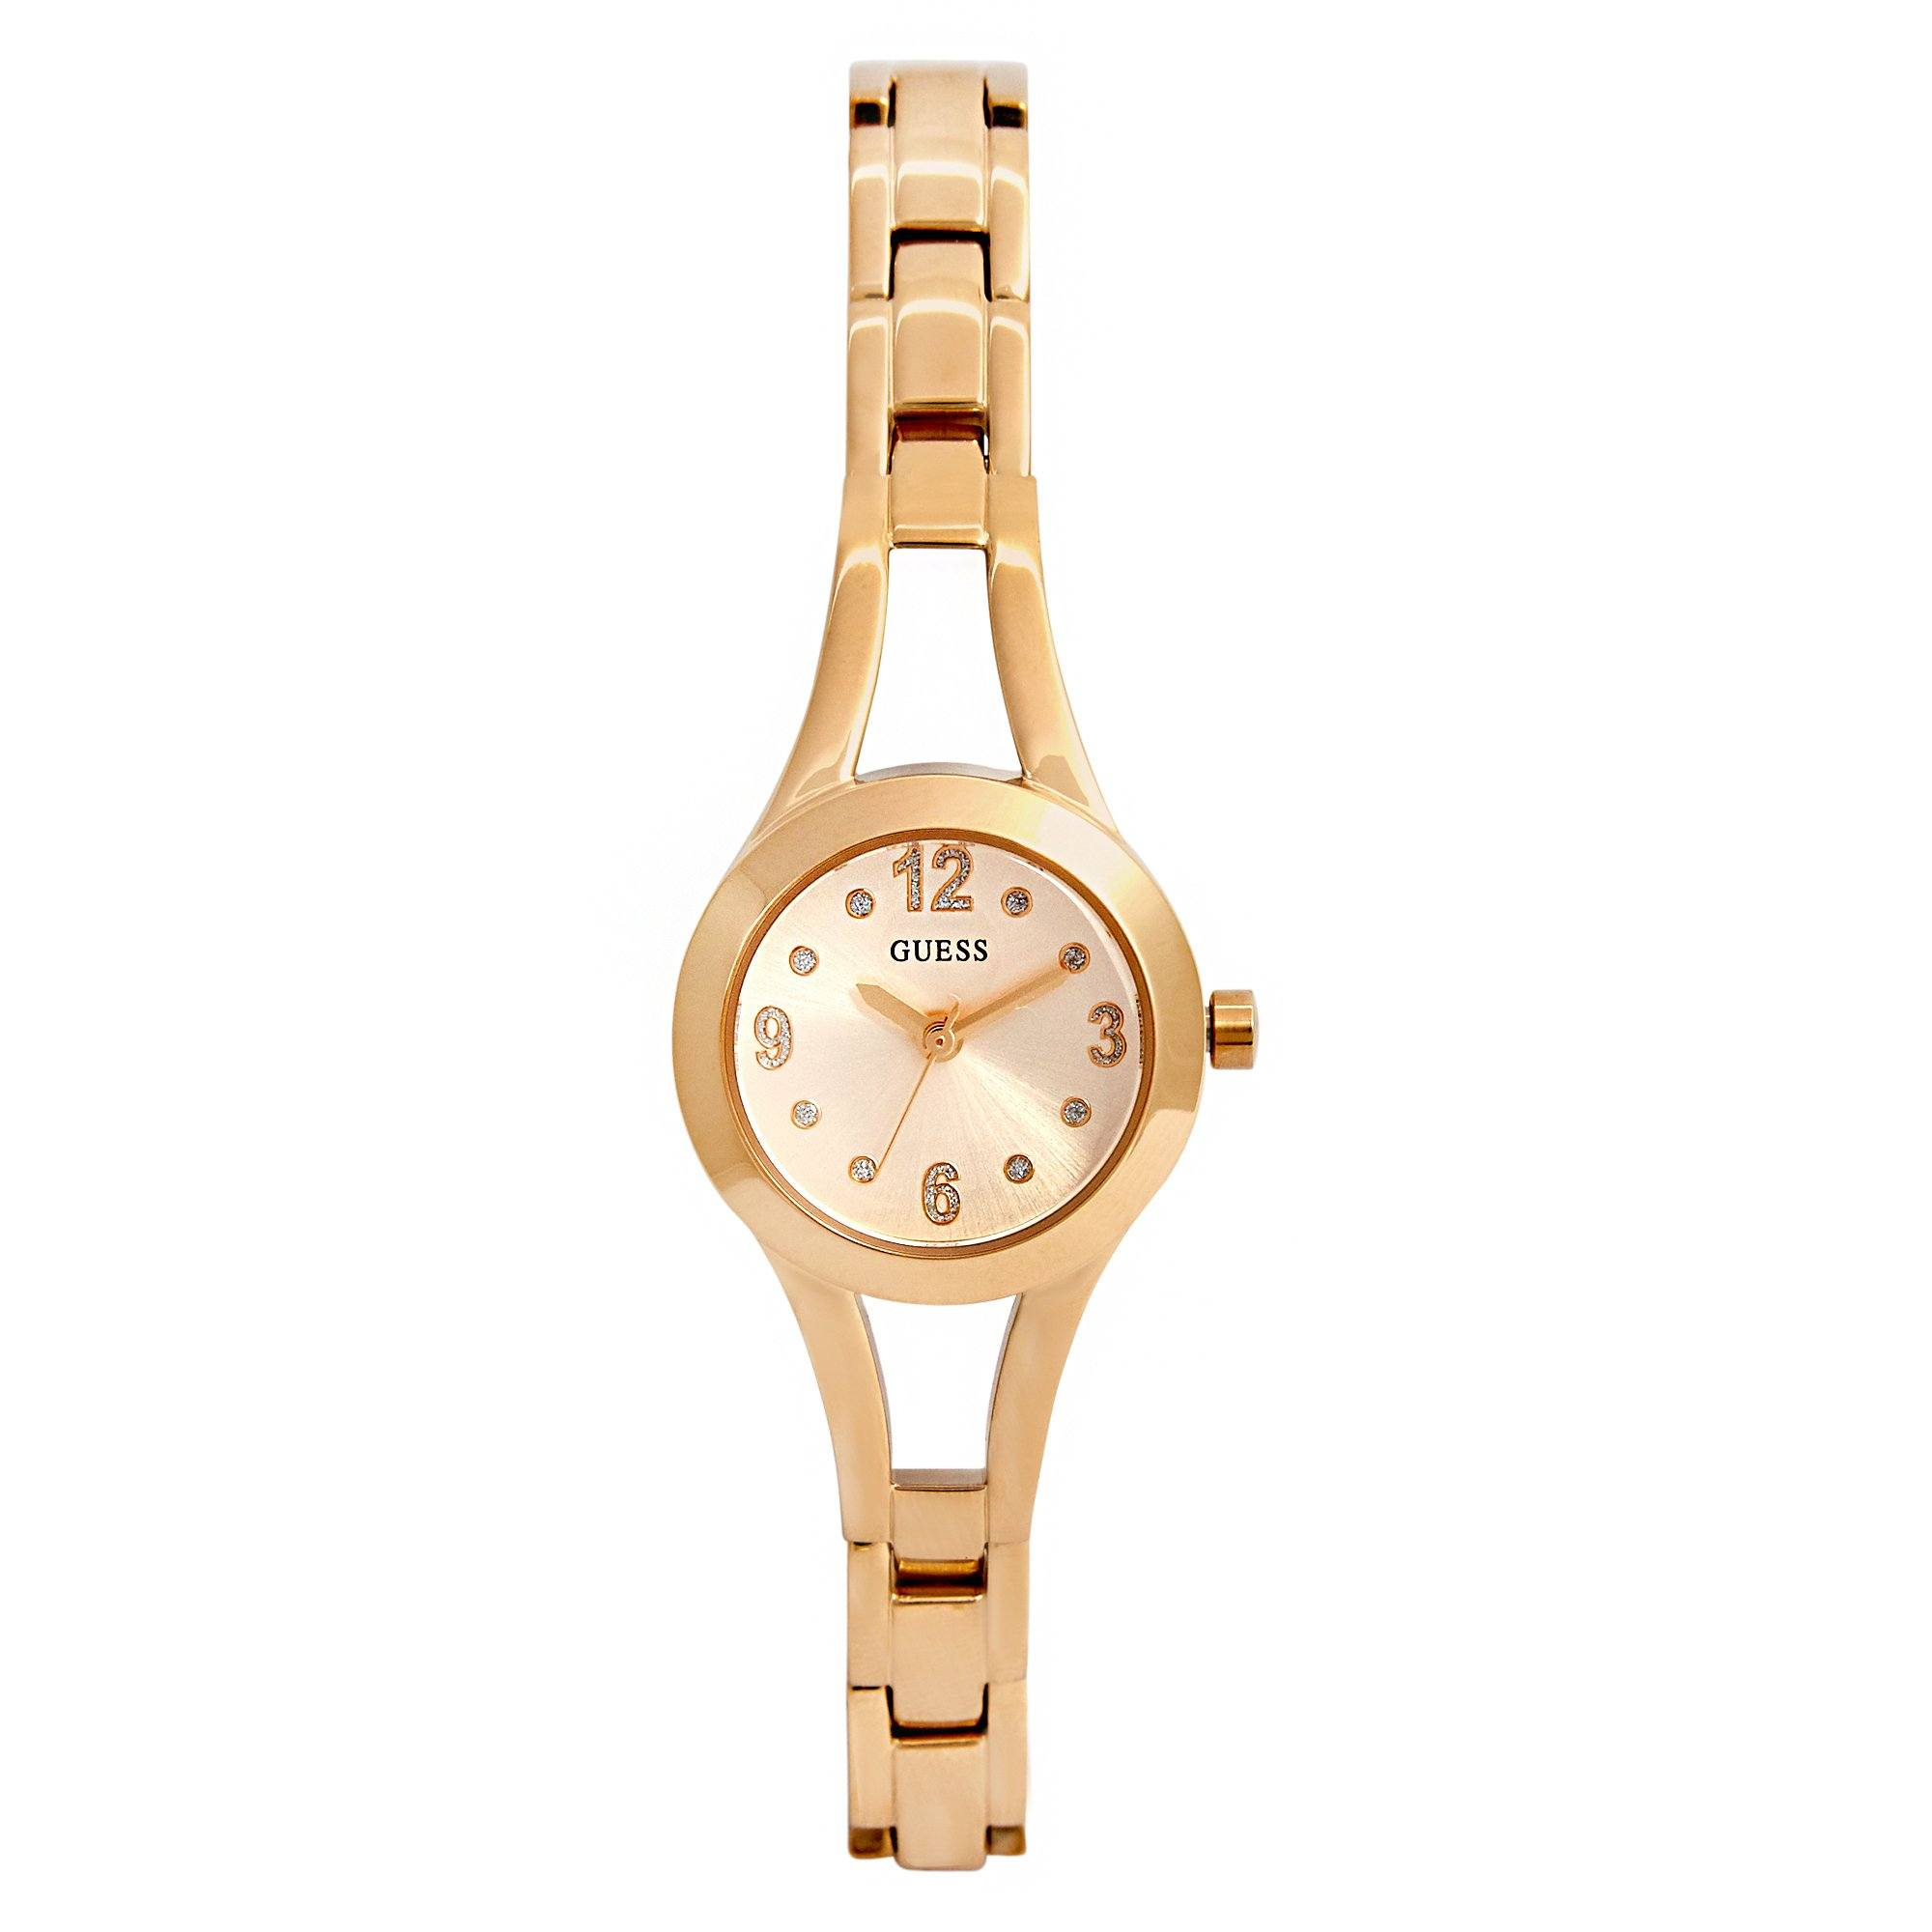 Guess Women's Evie Gold Gold Bracelet Watch Watches Isbister & Co Wholesale